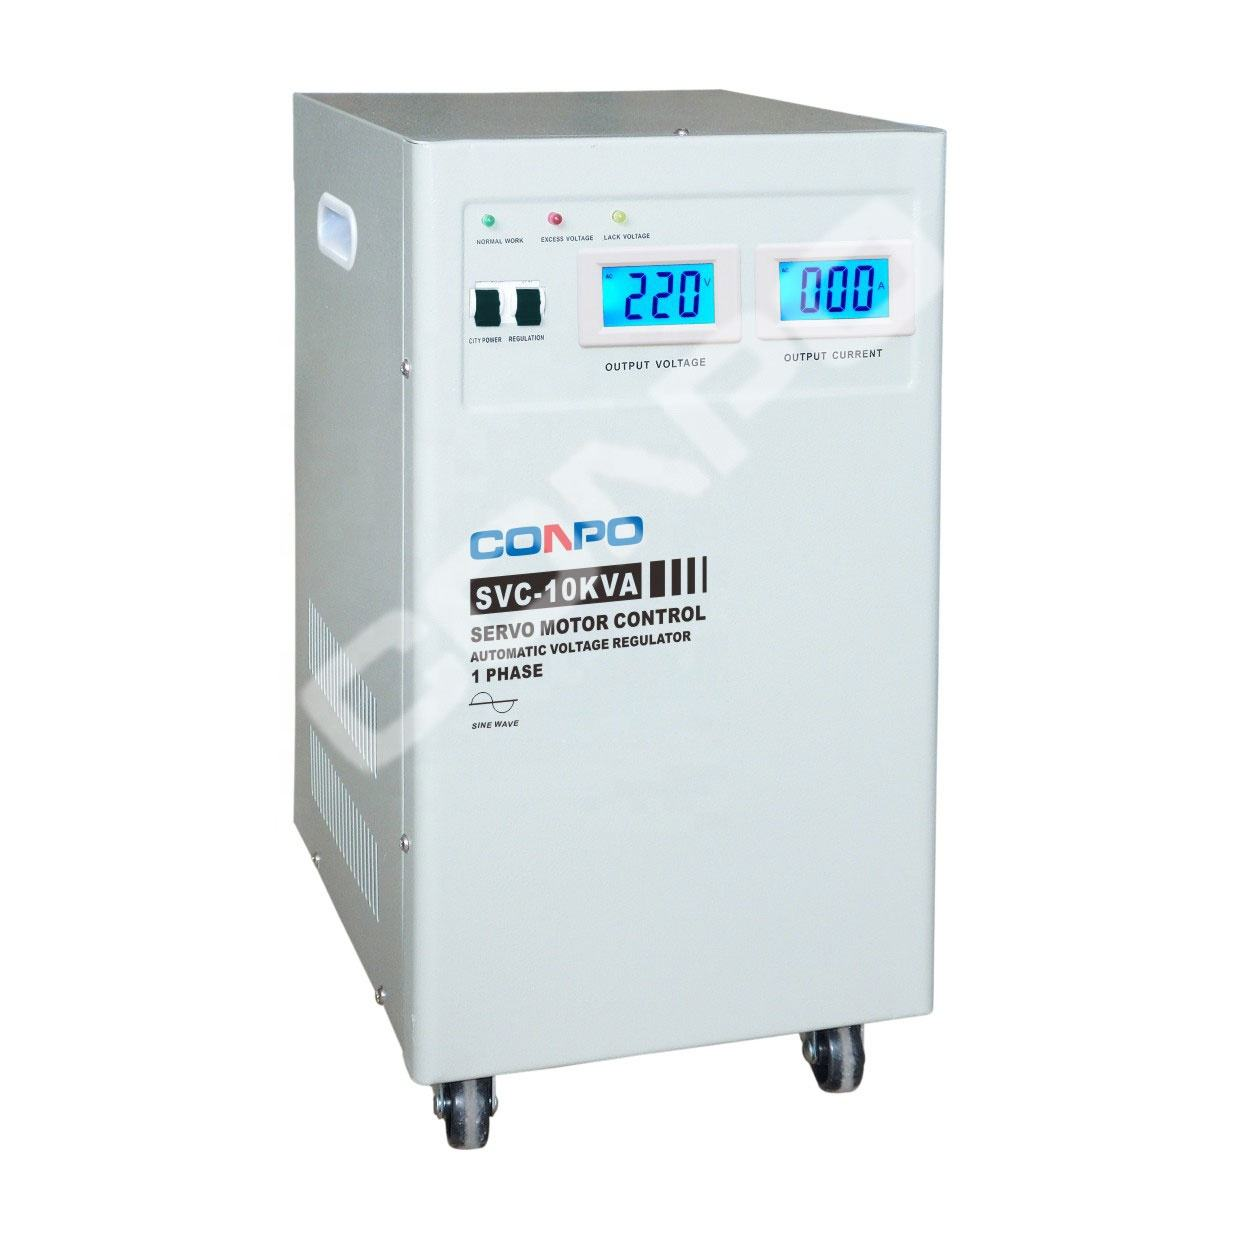 SVC-7500VA/10KVA (Vertikal) single Phase Servo Motor Tipe Automatic Voltage Stabilizer Regulator AVR 220VAC LCD Tampilan Digital